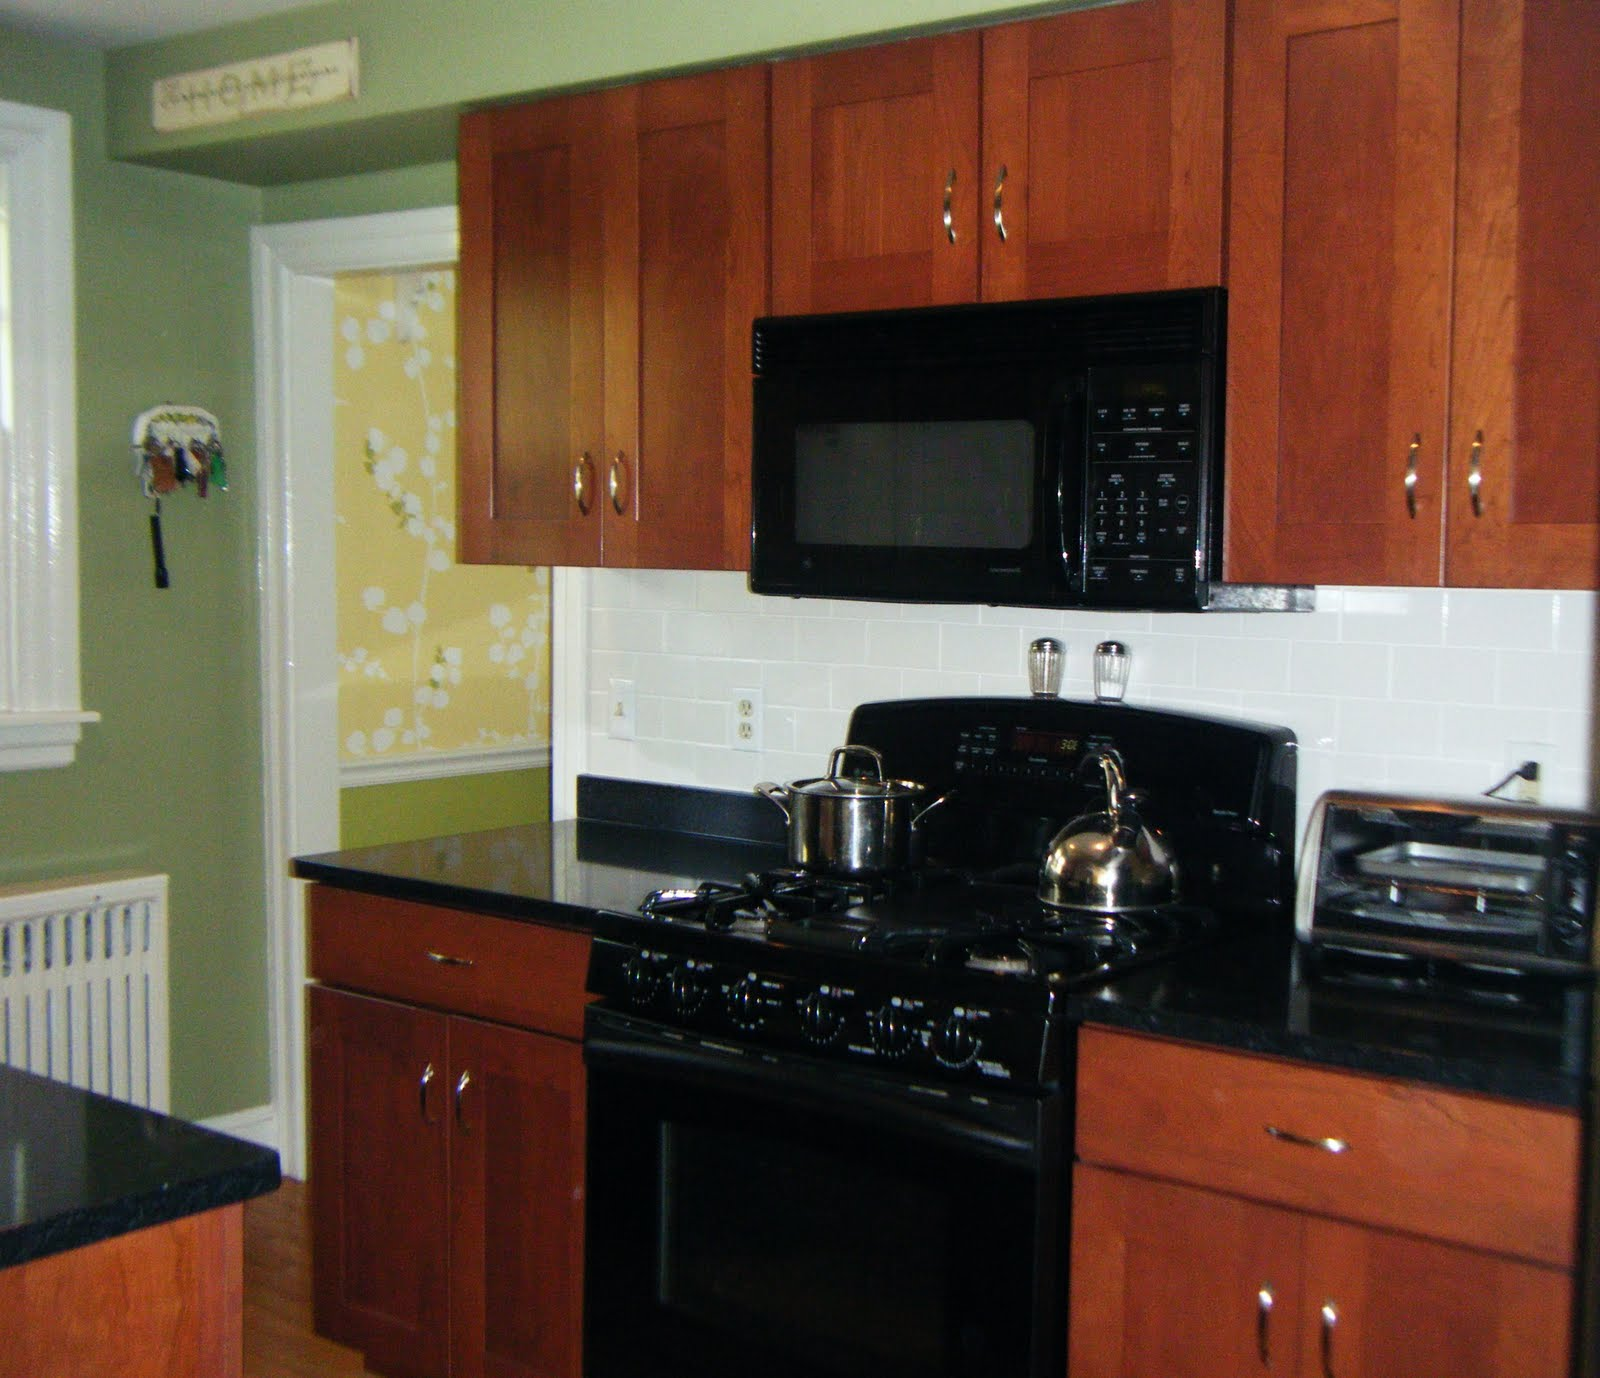 images kitchen backsplash cherry cabinets black counter kitchen backsplash ideas cherry cabinets cherry kitchen cabinets